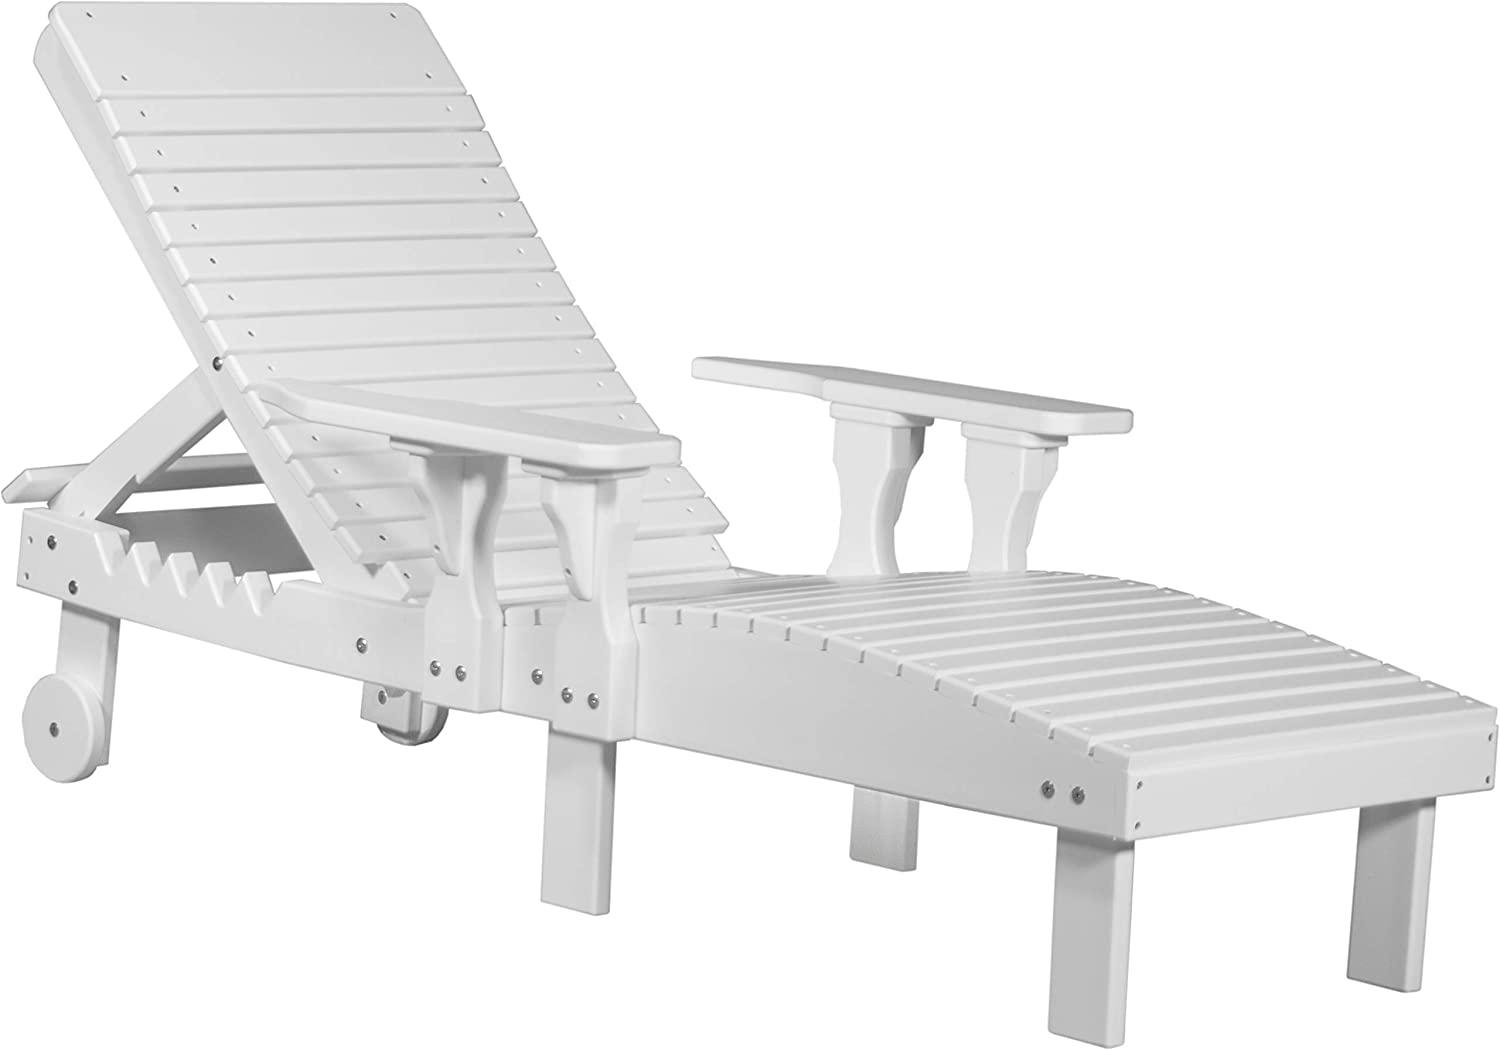 Cool Amazon Com Furniture Barn Usa Outdoor Lounge Chair White Gmtry Best Dining Table And Chair Ideas Images Gmtryco